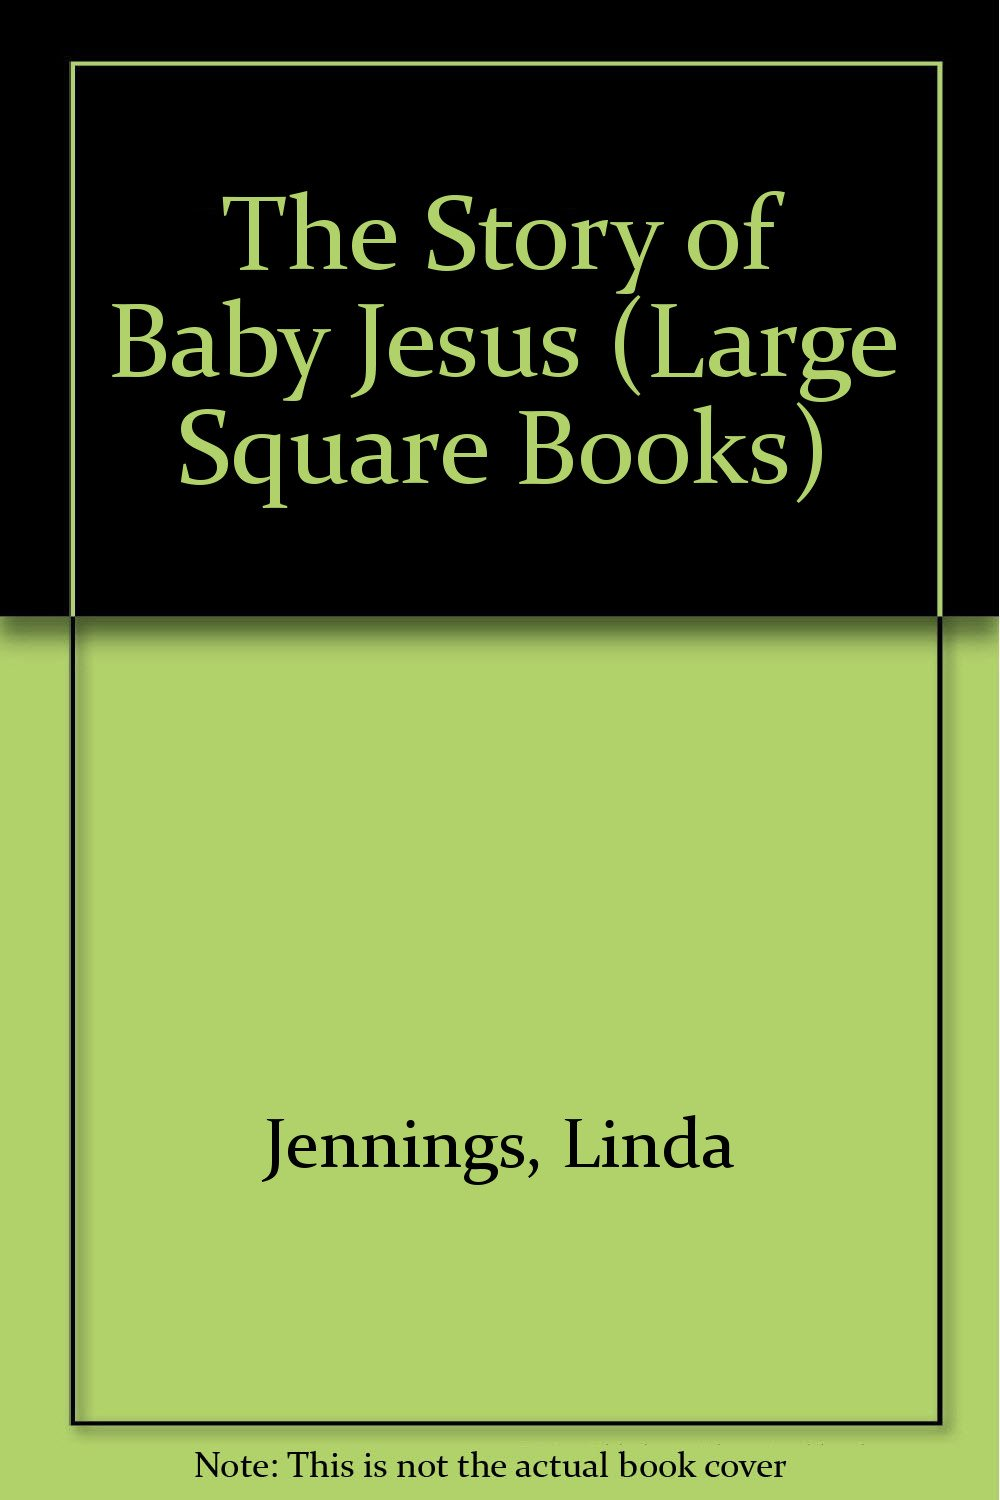 buy the story of baby jesus large square books book online at